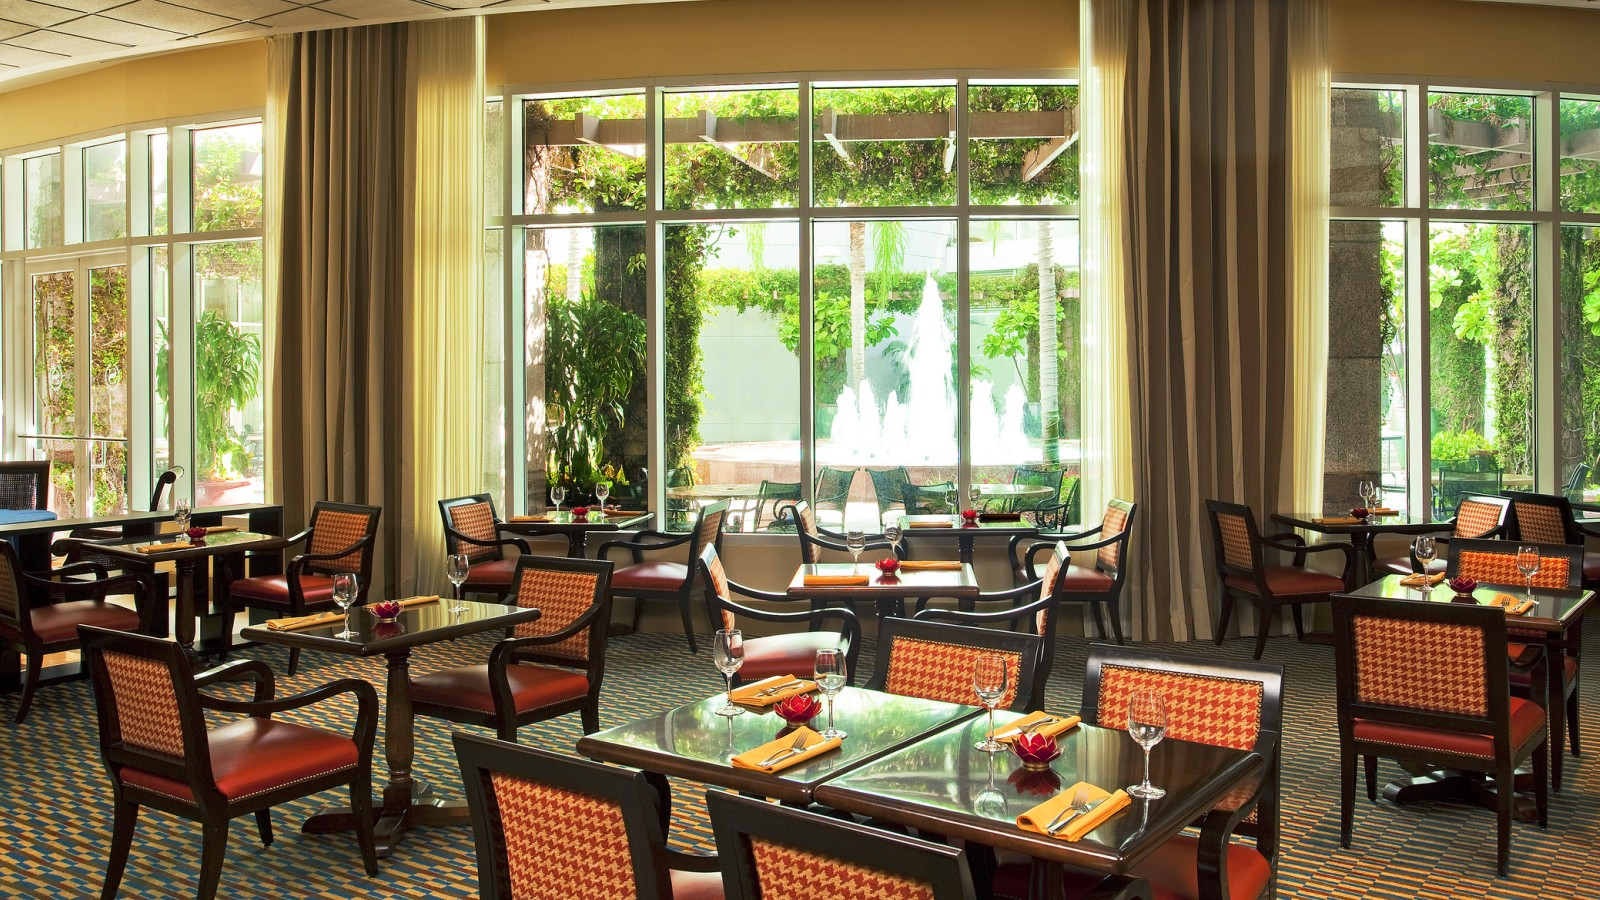 Cilantro's Restaurant and Lounge at Sheraton Suites Fort Lauderdale Plantation